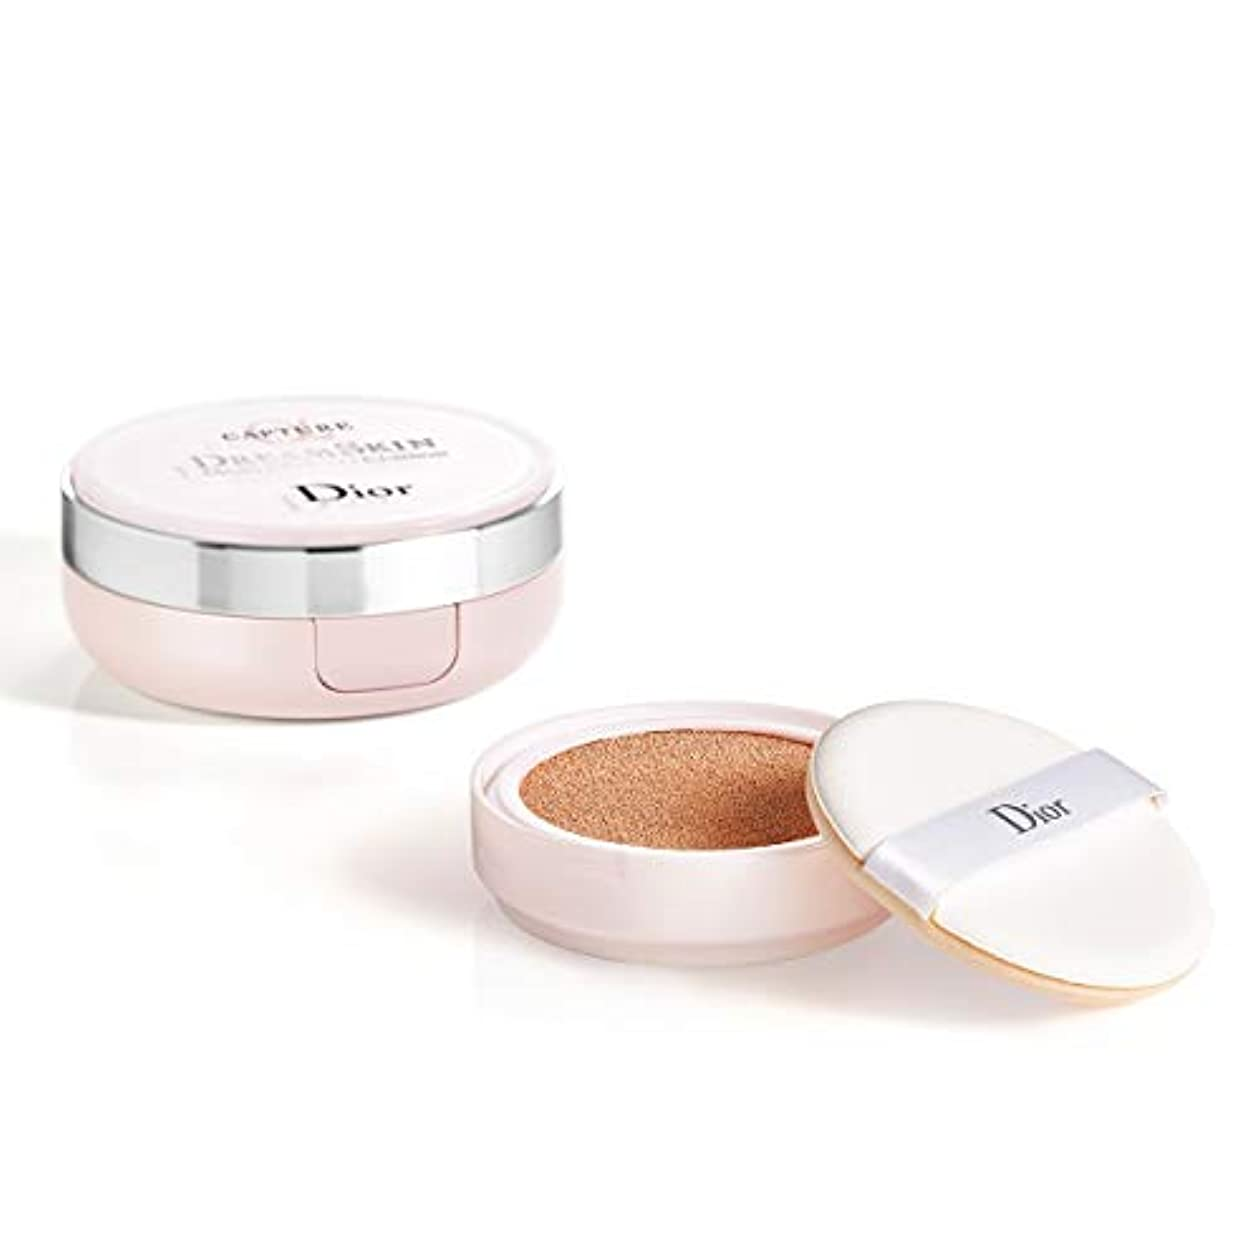 乱暴な石灰岩アブセイクリスチャンディオール Capture Dreamskin Moist & Perfect Cushion SPF 50 With Extra Refill - # 025 (Soft Beige) 2x15g/0.5oz並行輸入品